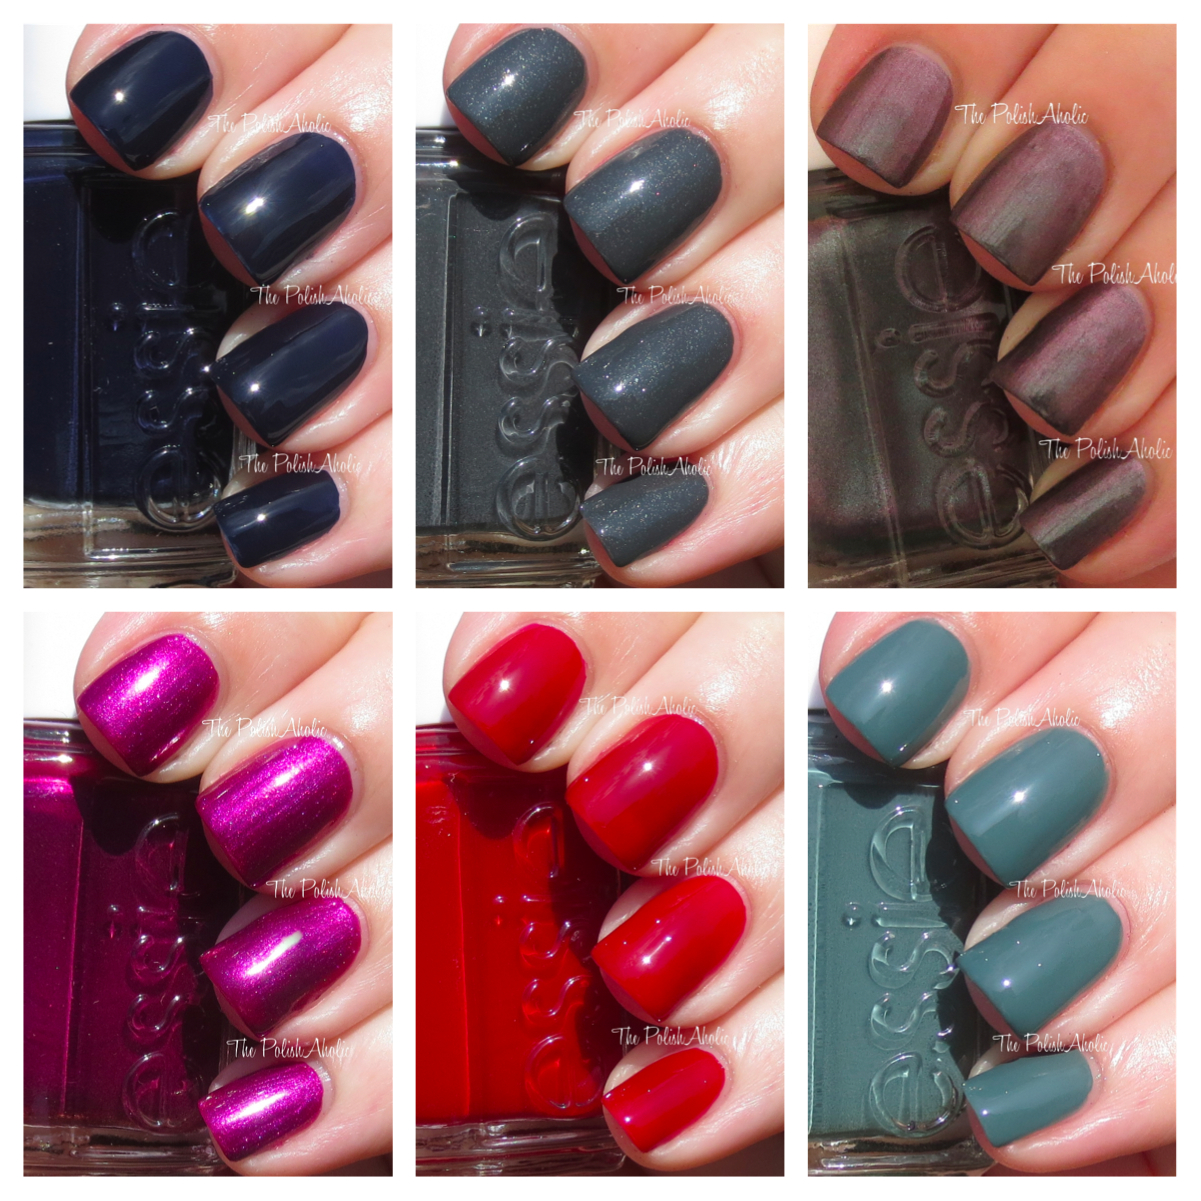 Essie Fall 2013 Collection Swatches